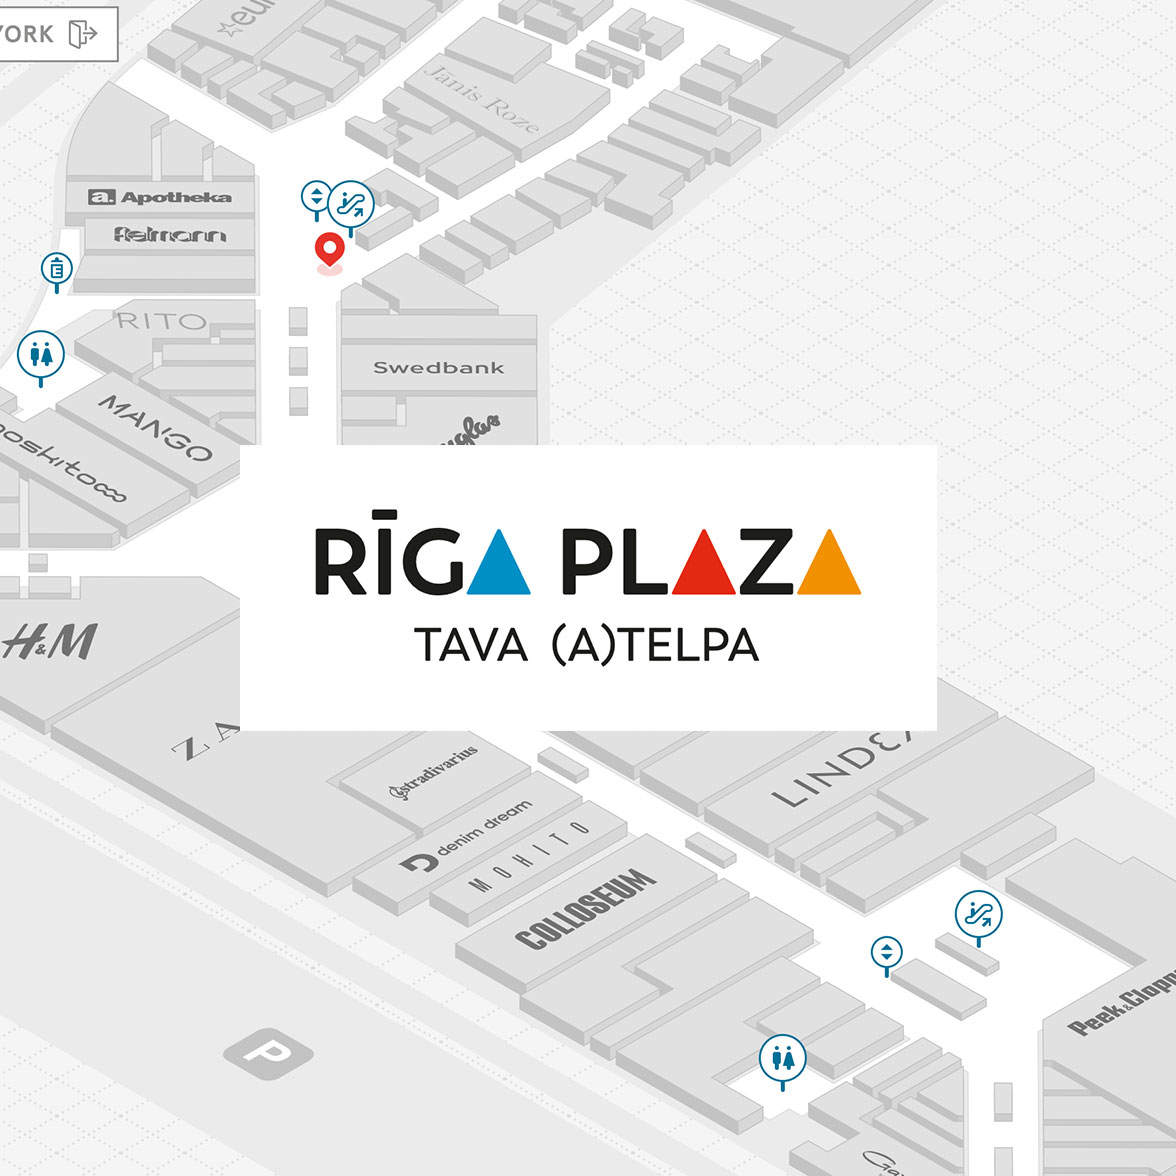 Riga Plaza interaktīvais stends